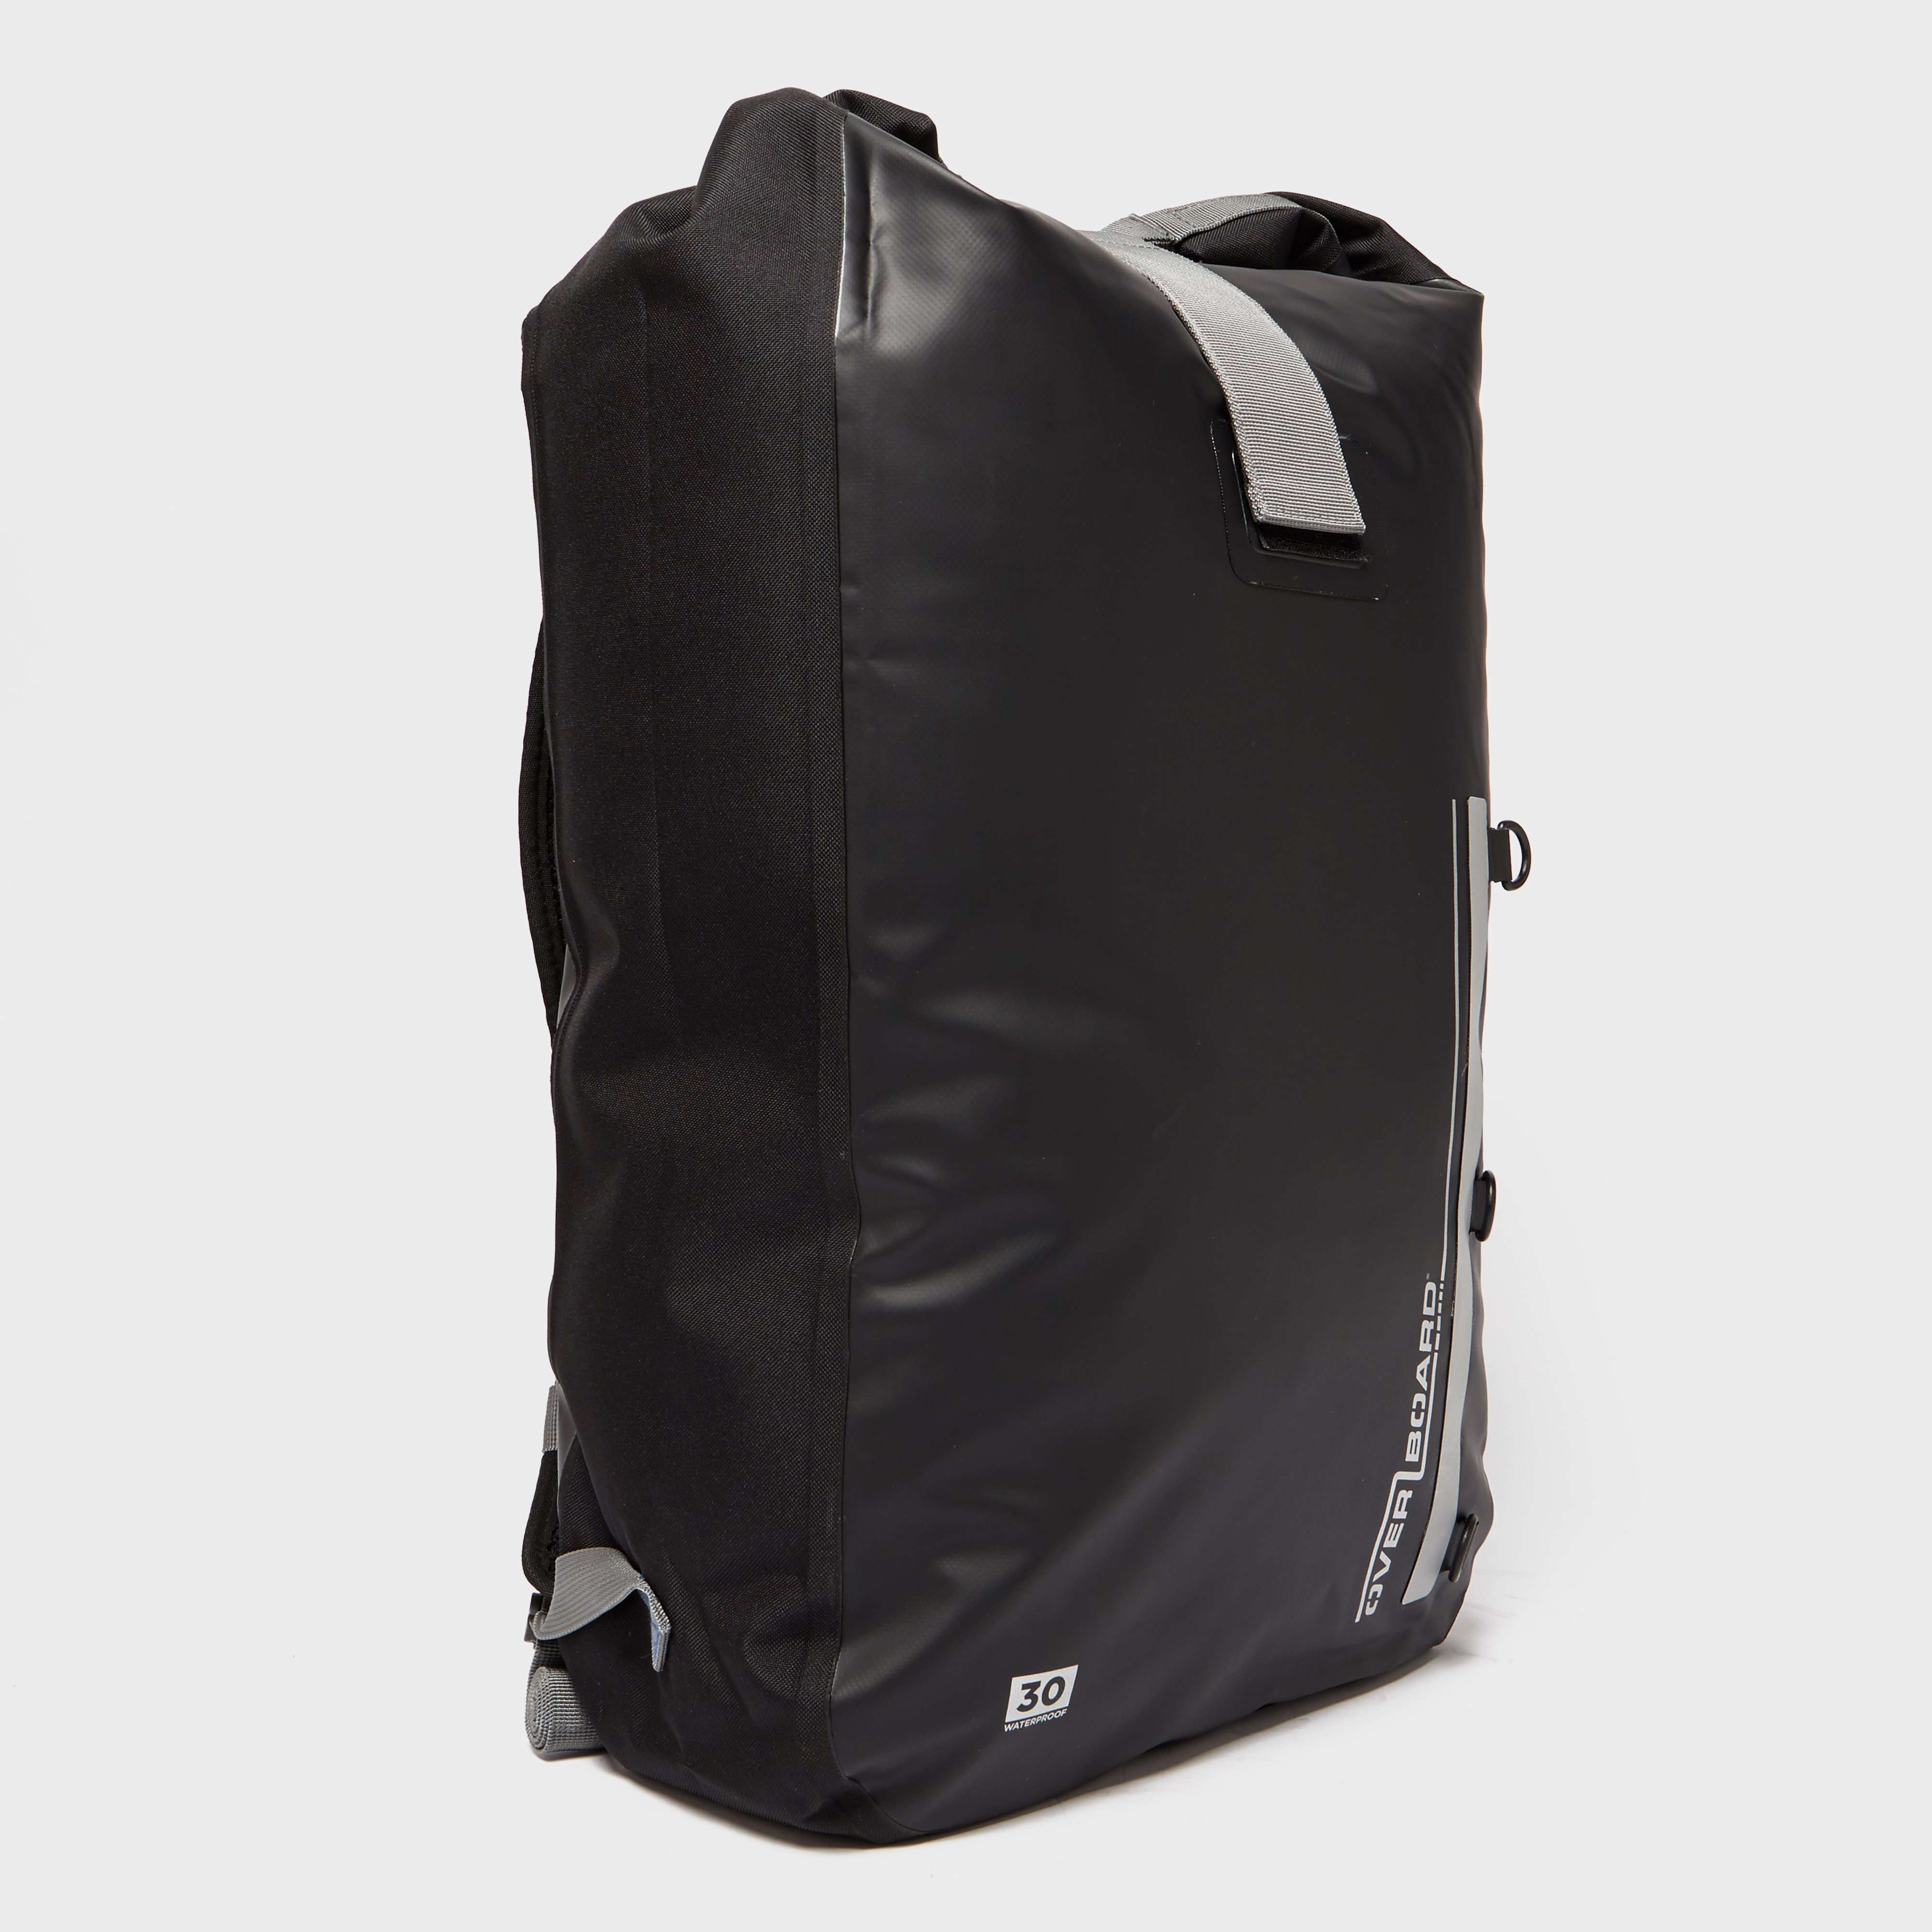 OVERBOARD Classic 30 Litre Backpack